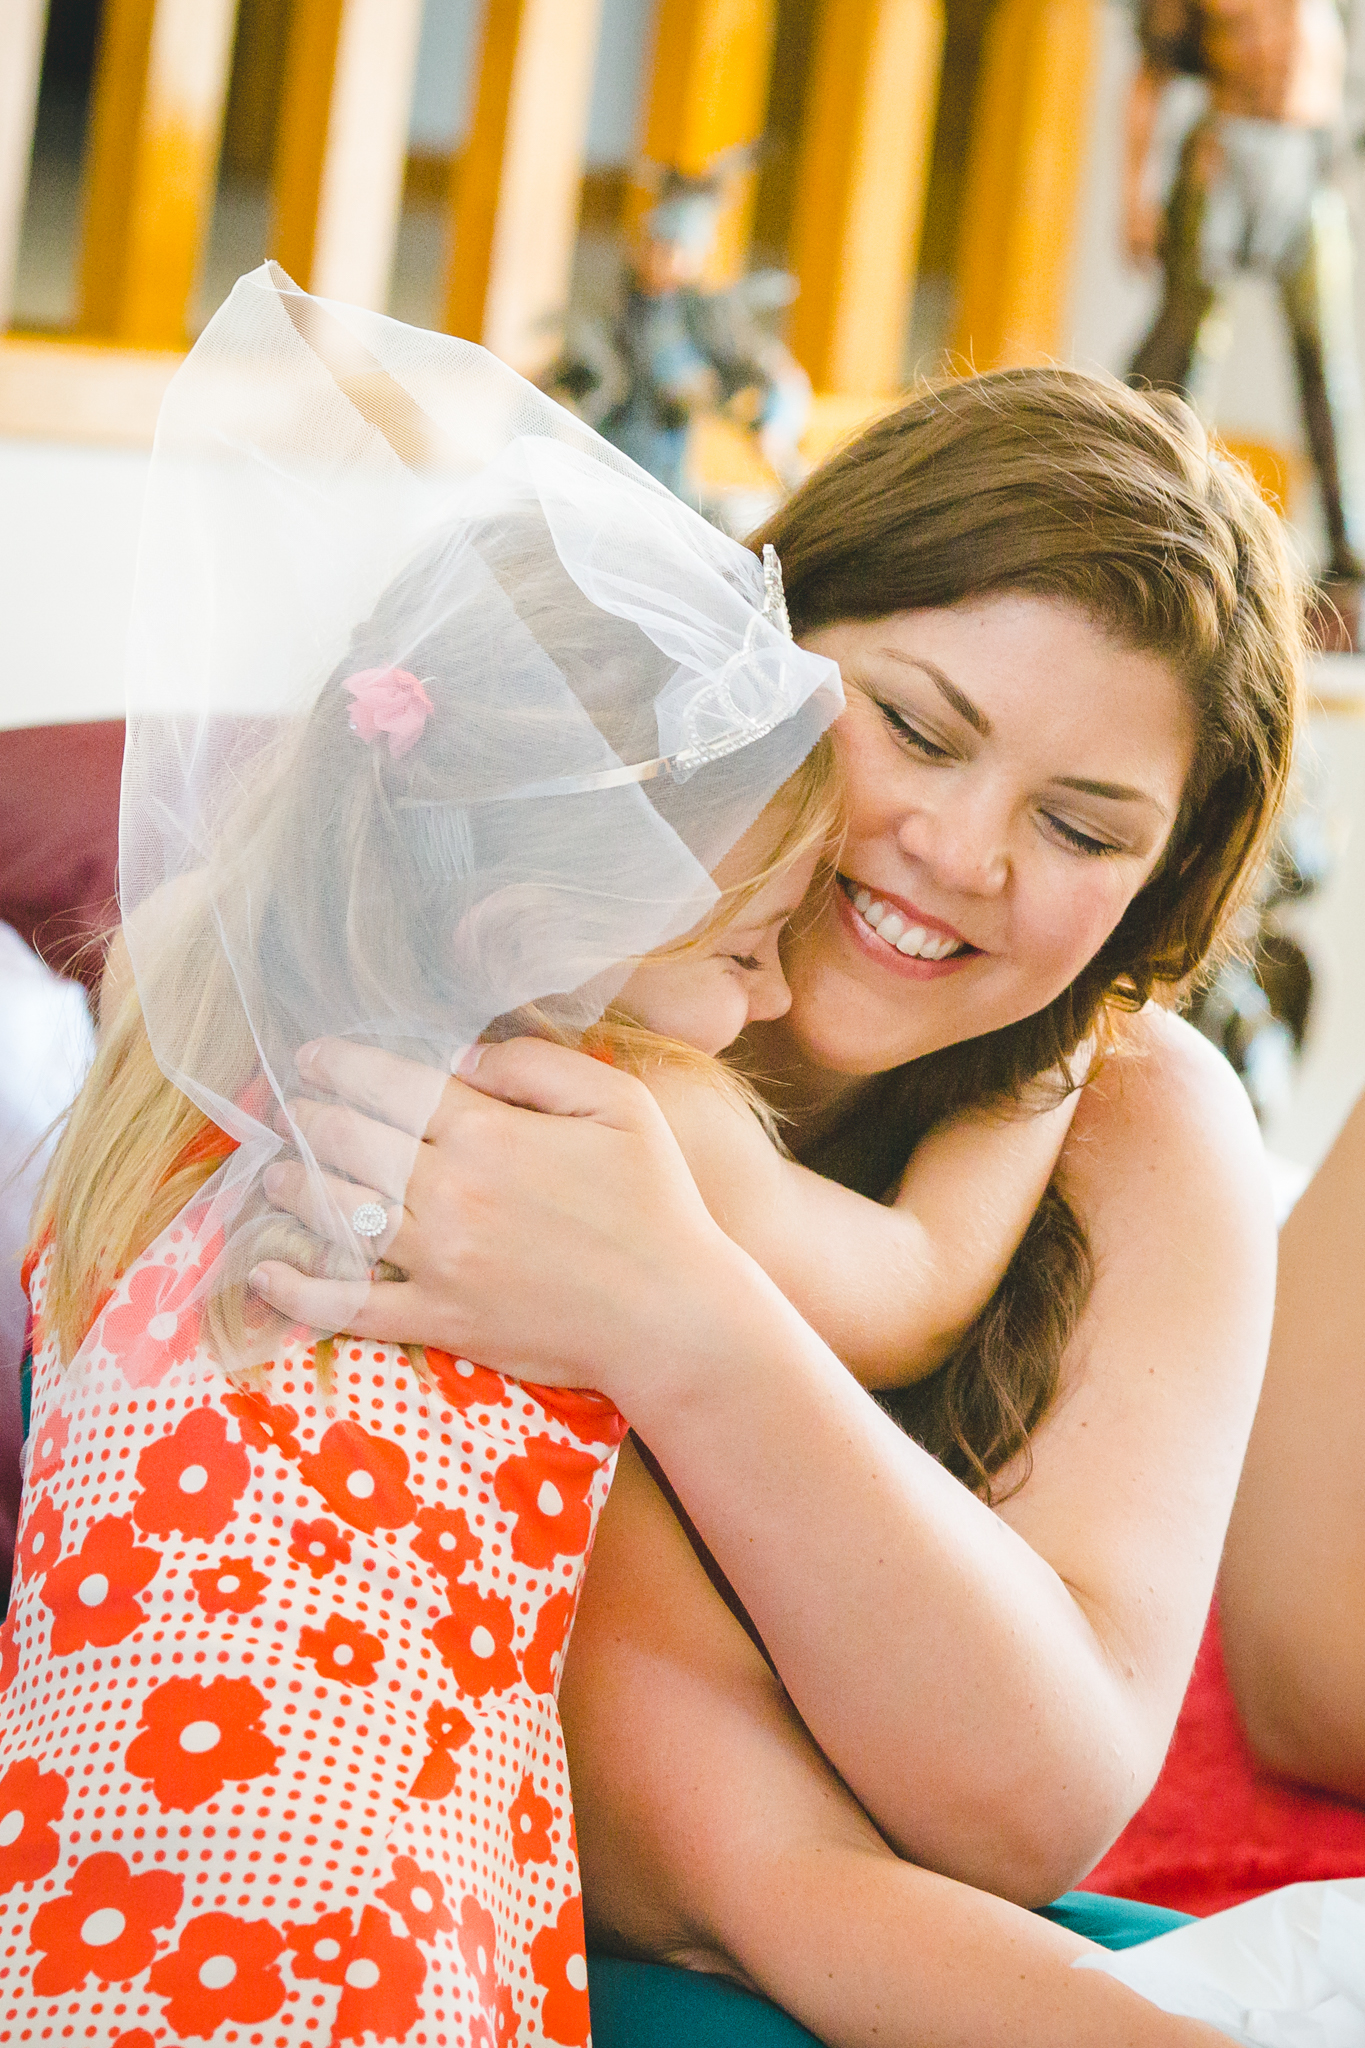 phoenix-photography-tiffany-bridal-shower-sweet-hug-with-niece